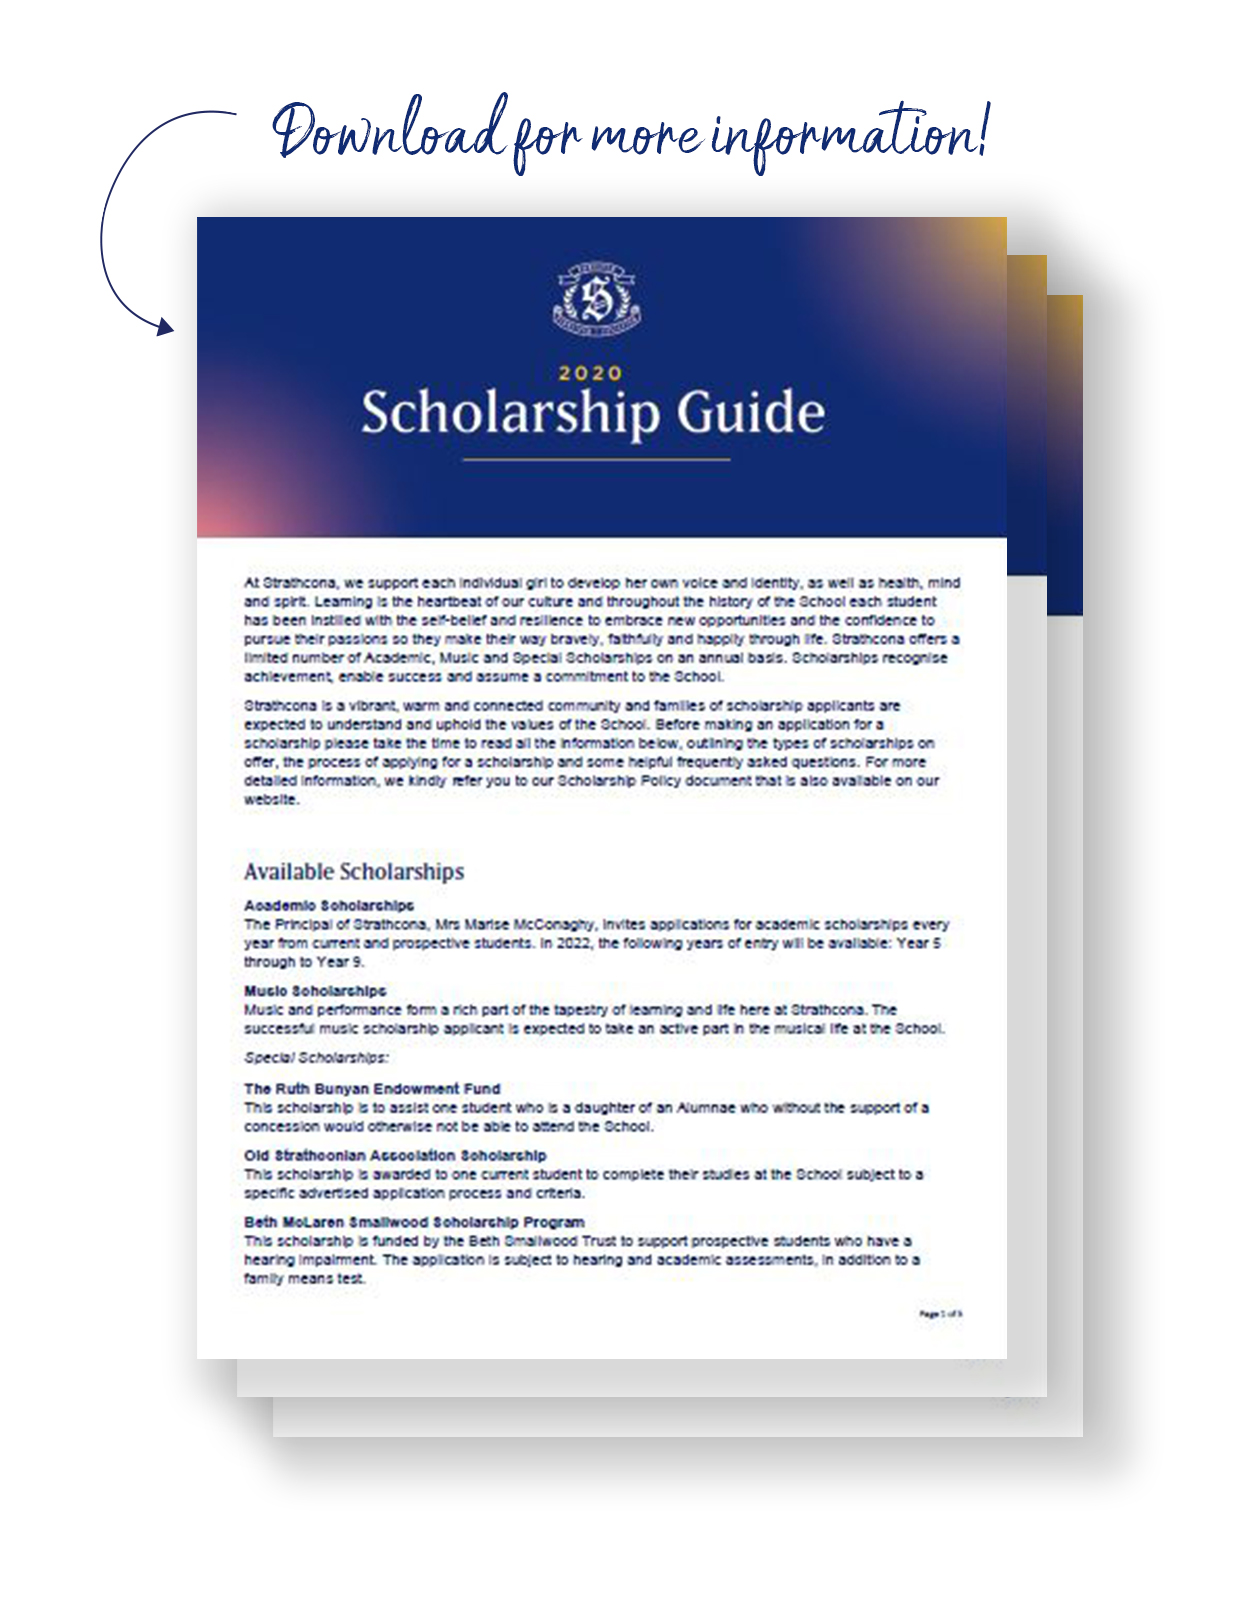 Scholarship guide image